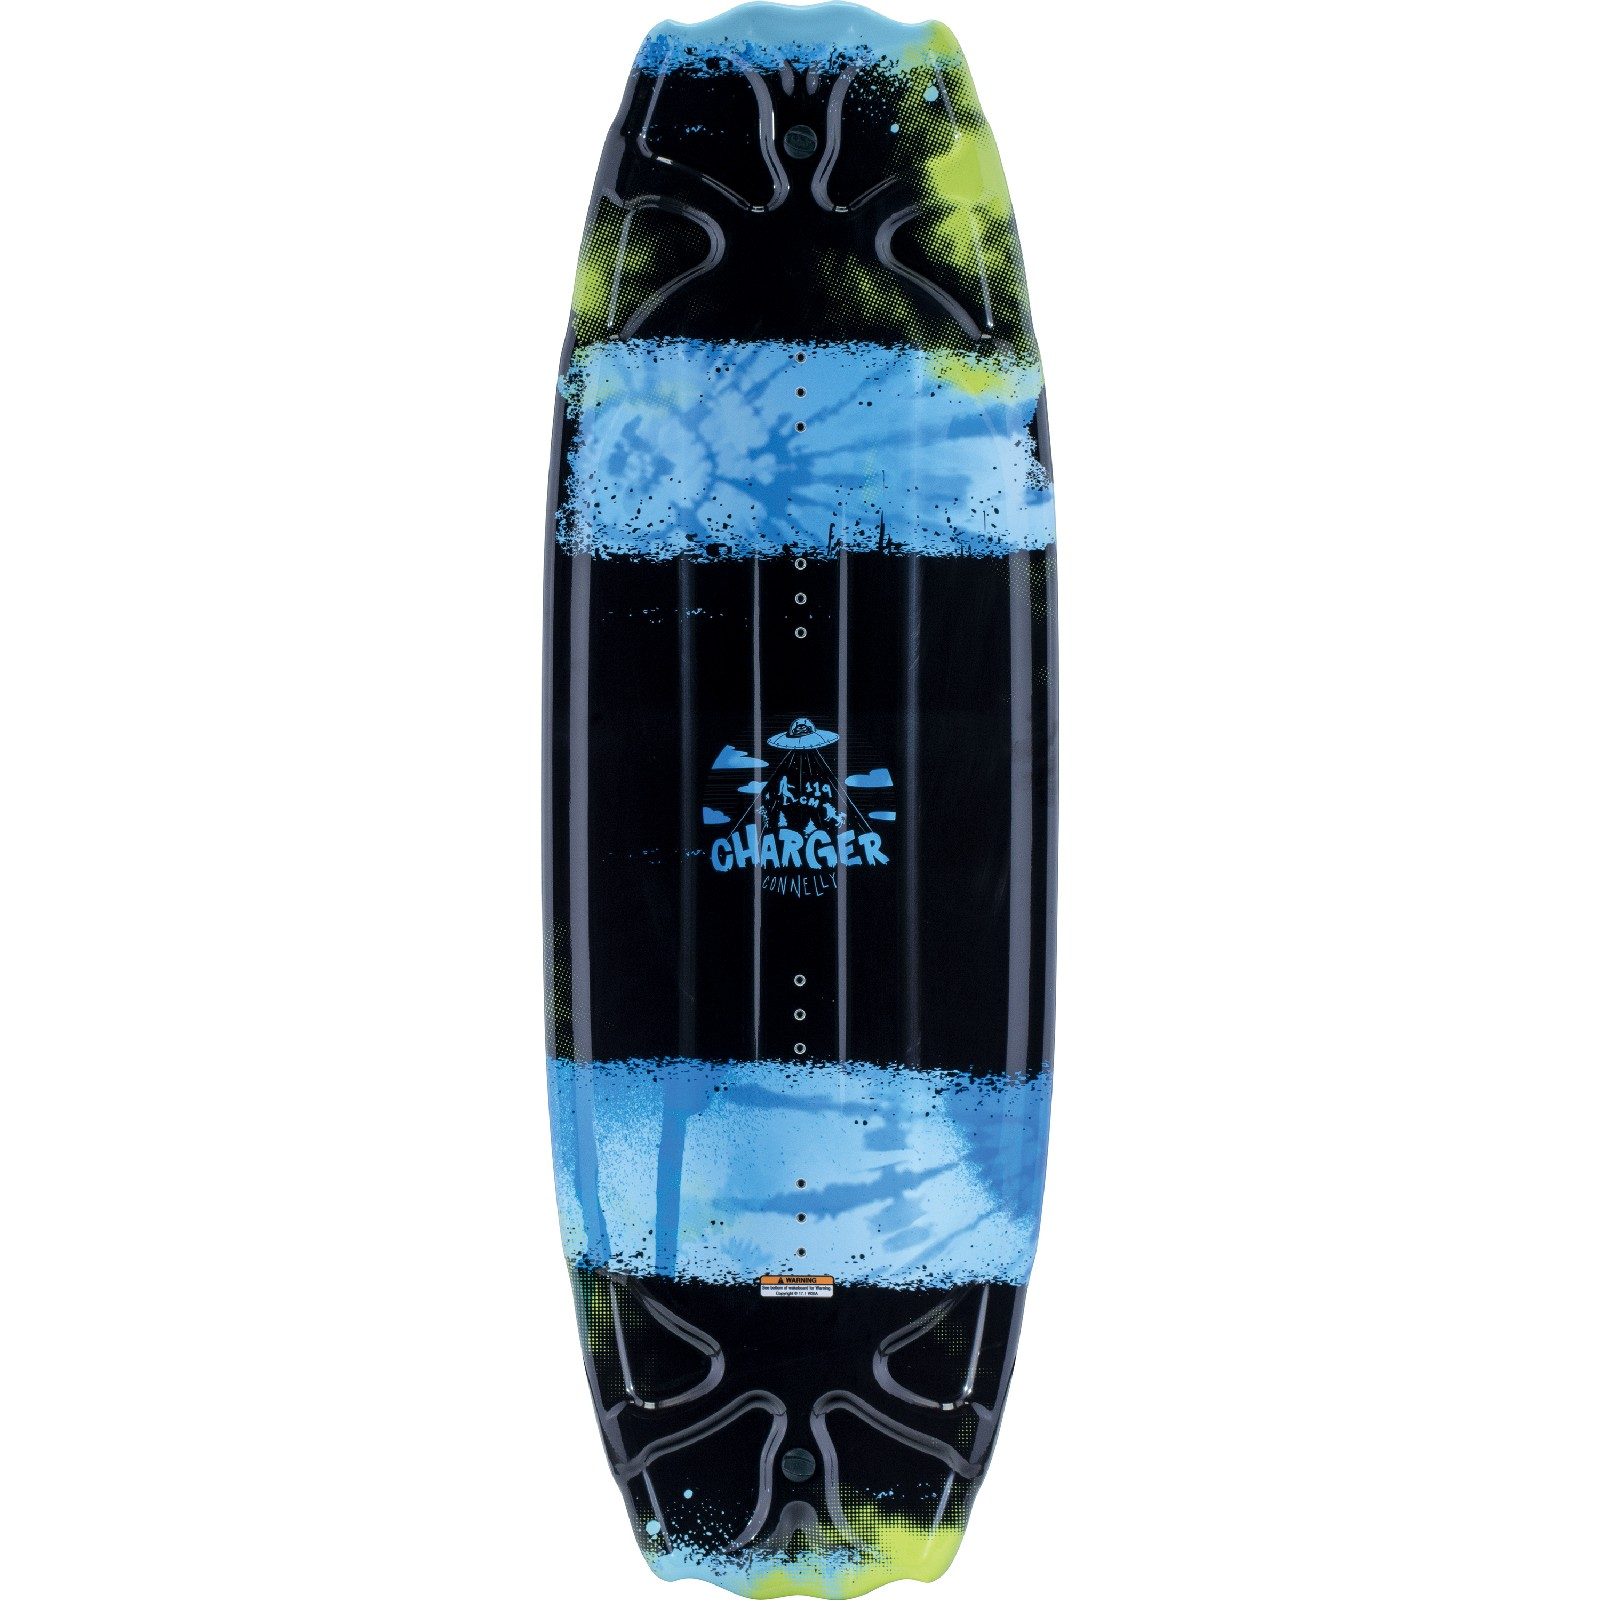 PLACA WAKEBOARD CHARGER 119 JR. WAKEBOARD CONNELLY 2019